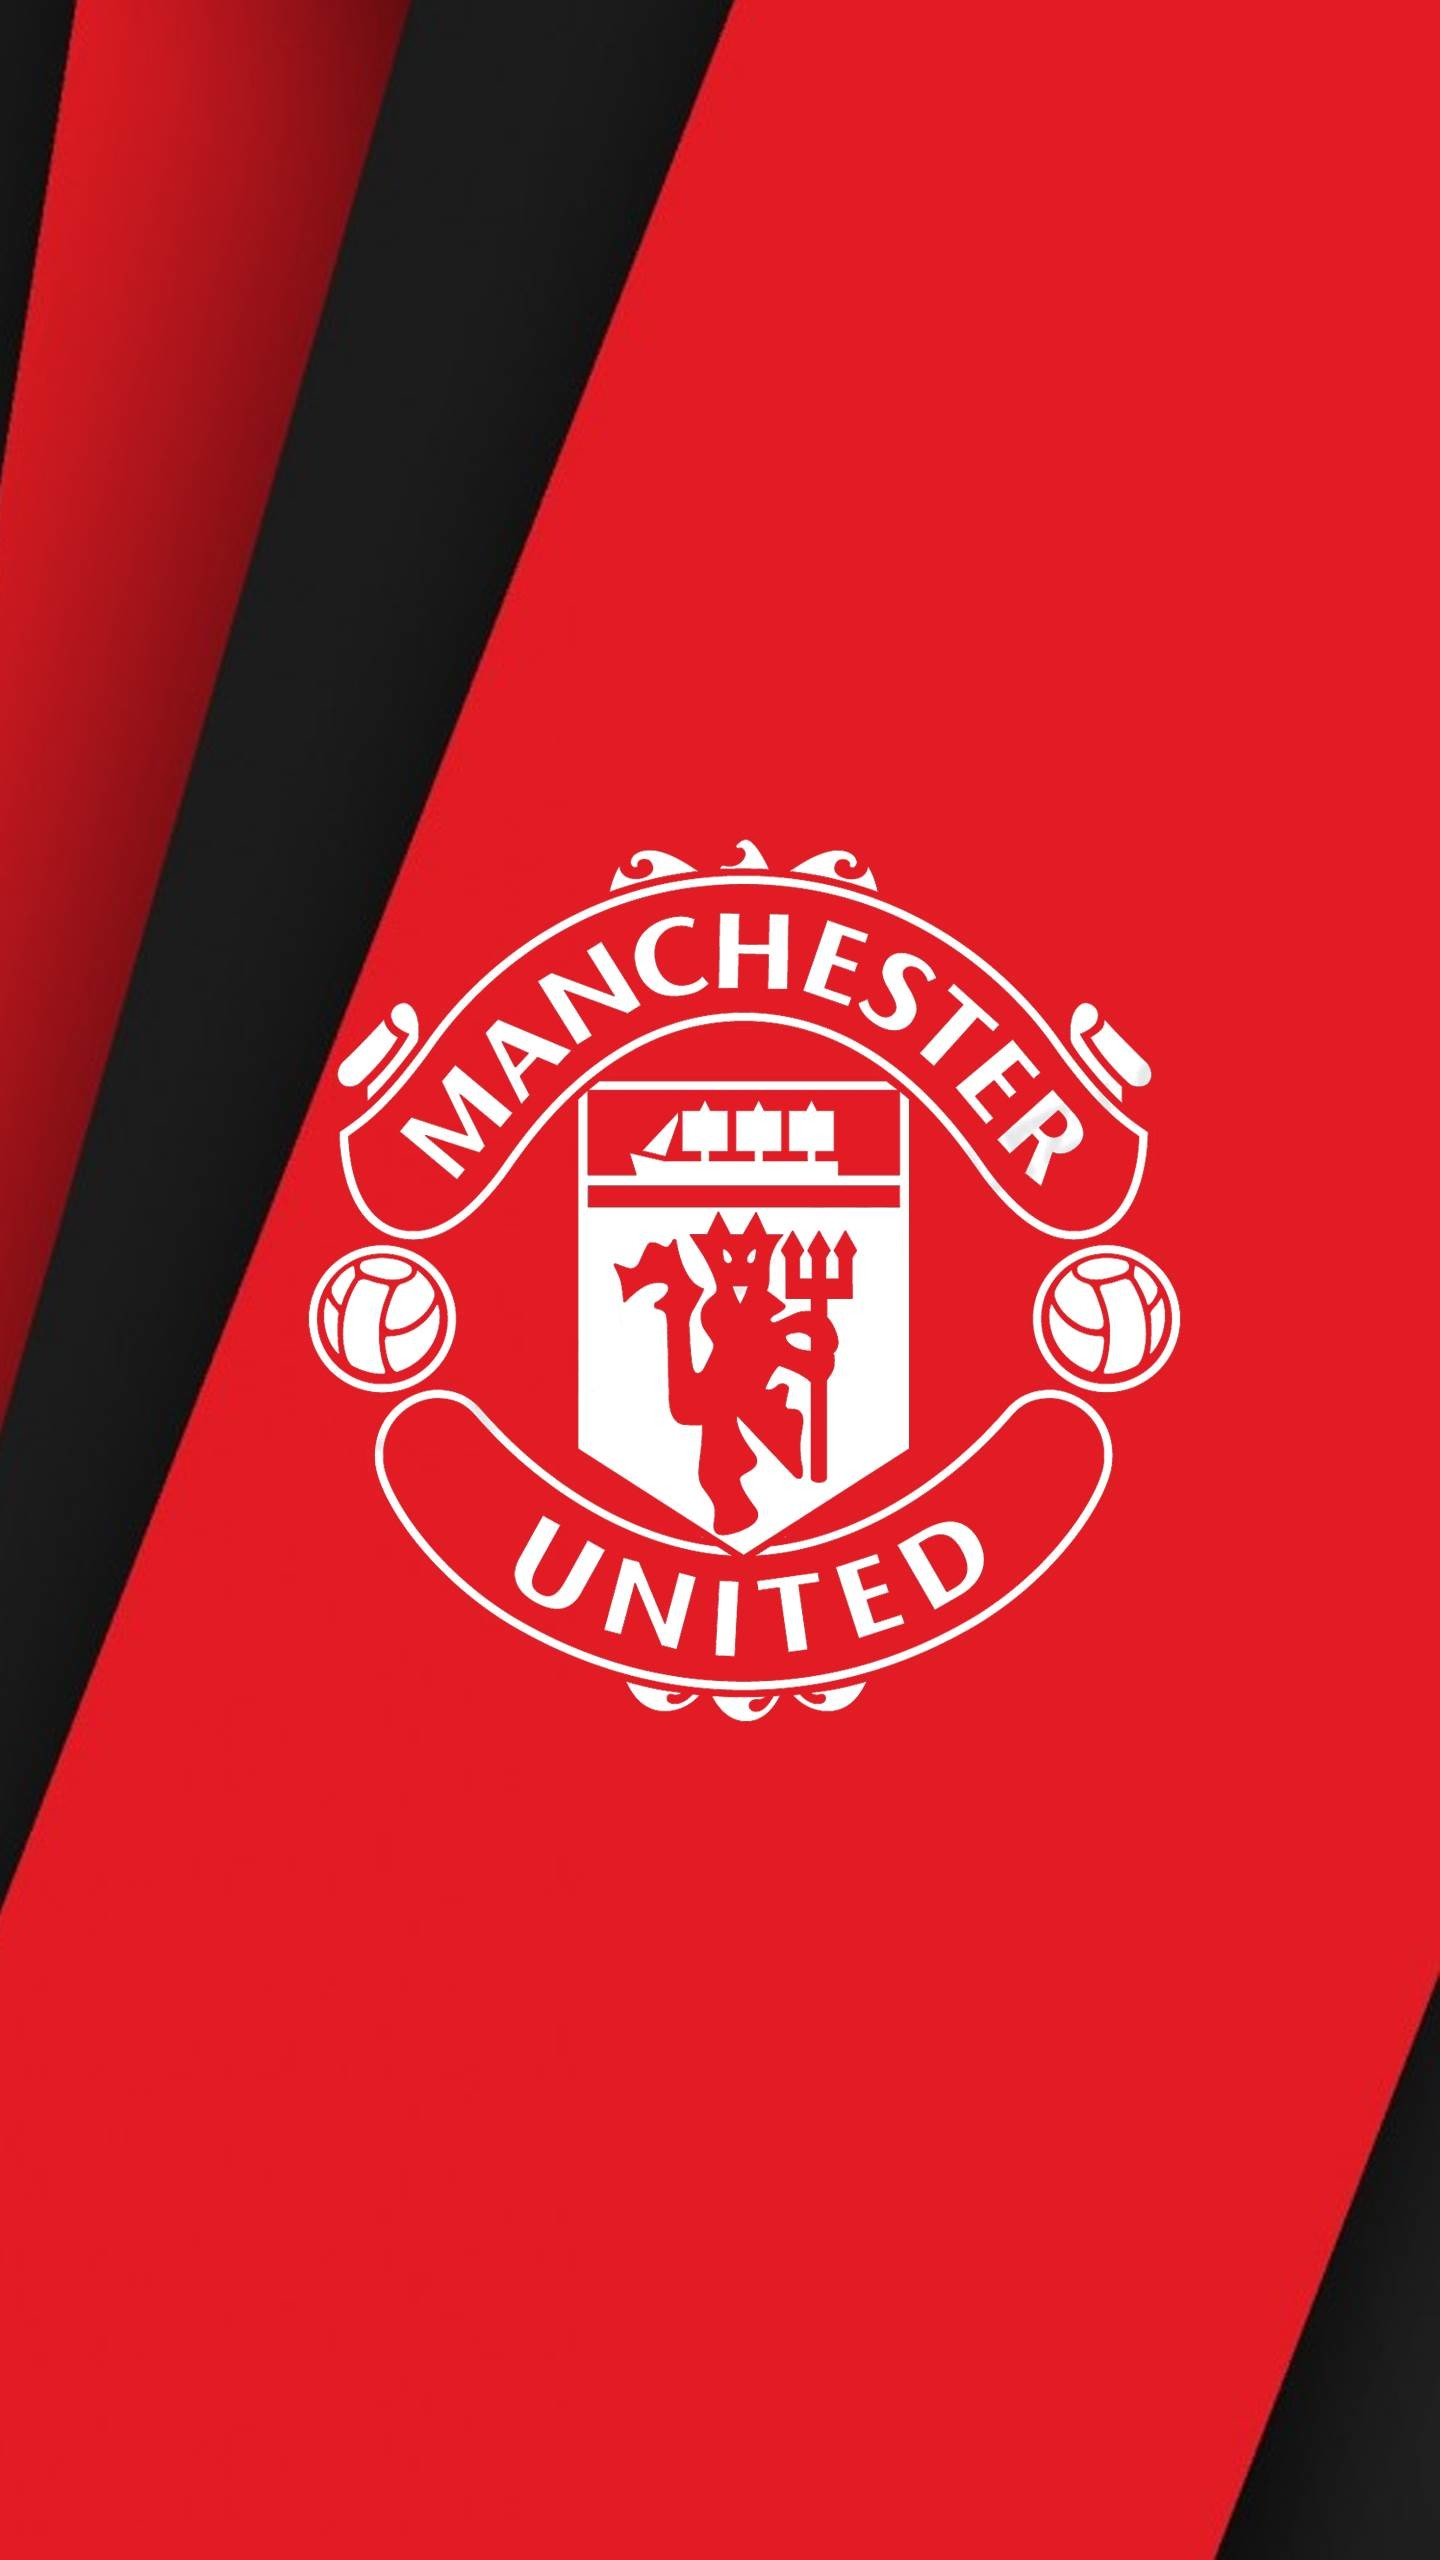 Manchester united wallpaper hd 2018 72 pictures manchester united players 2014 2015 wallpaper hd free download 1920x1080 voltagebd Choice Image